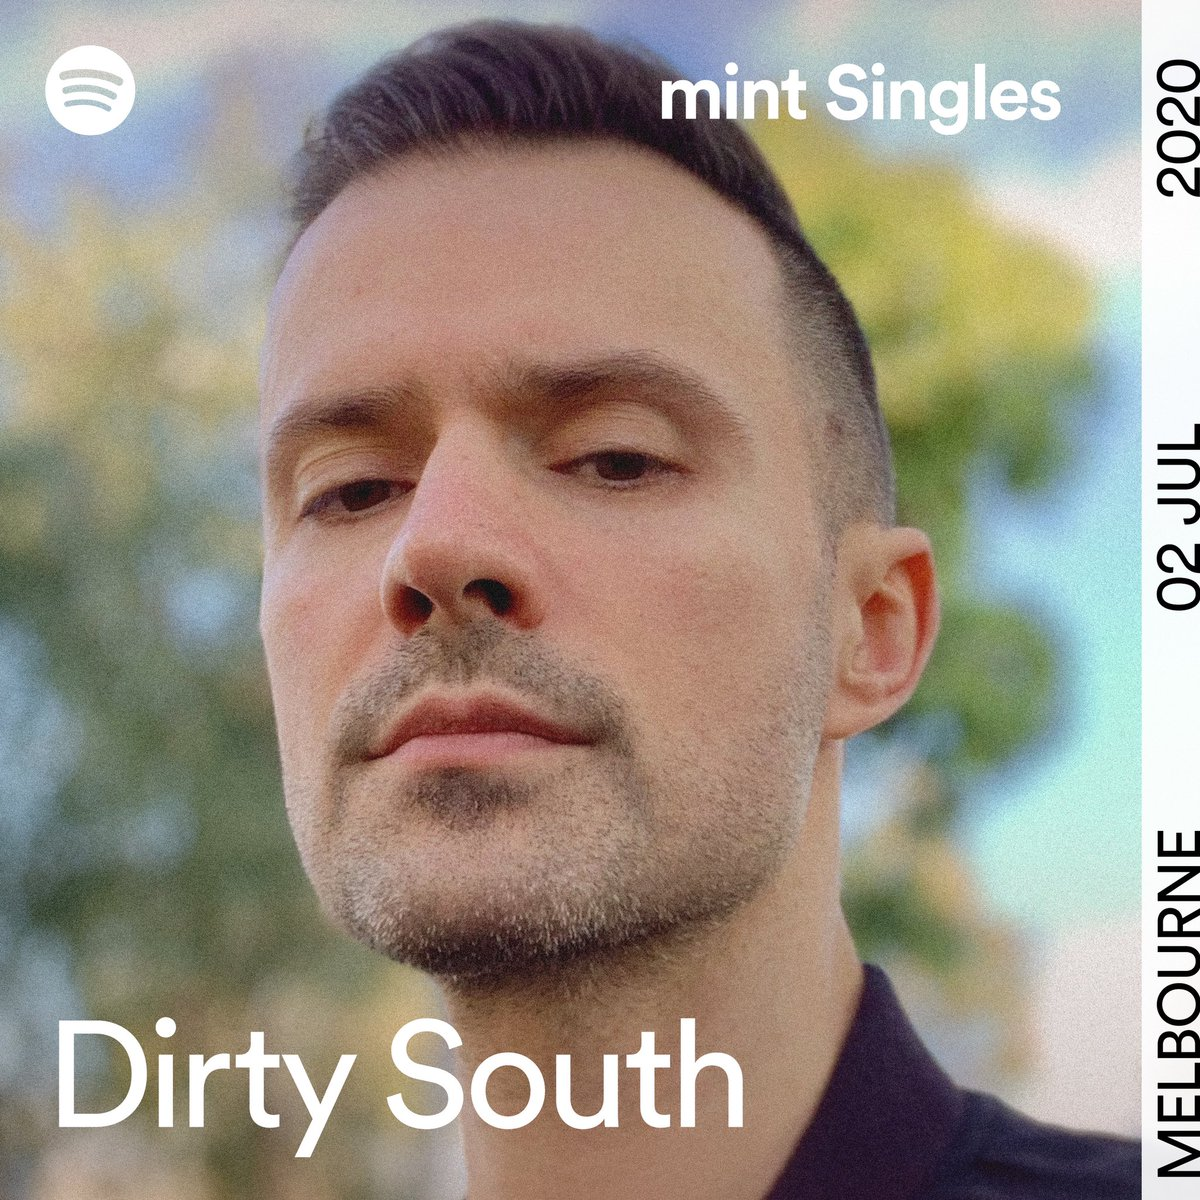 .@dirtysouth mixes acoustic guitars, shimmering atmospheric synths and his signature Moog-esque riff for #SpotifySingles → spoti.fi/DirtySouth